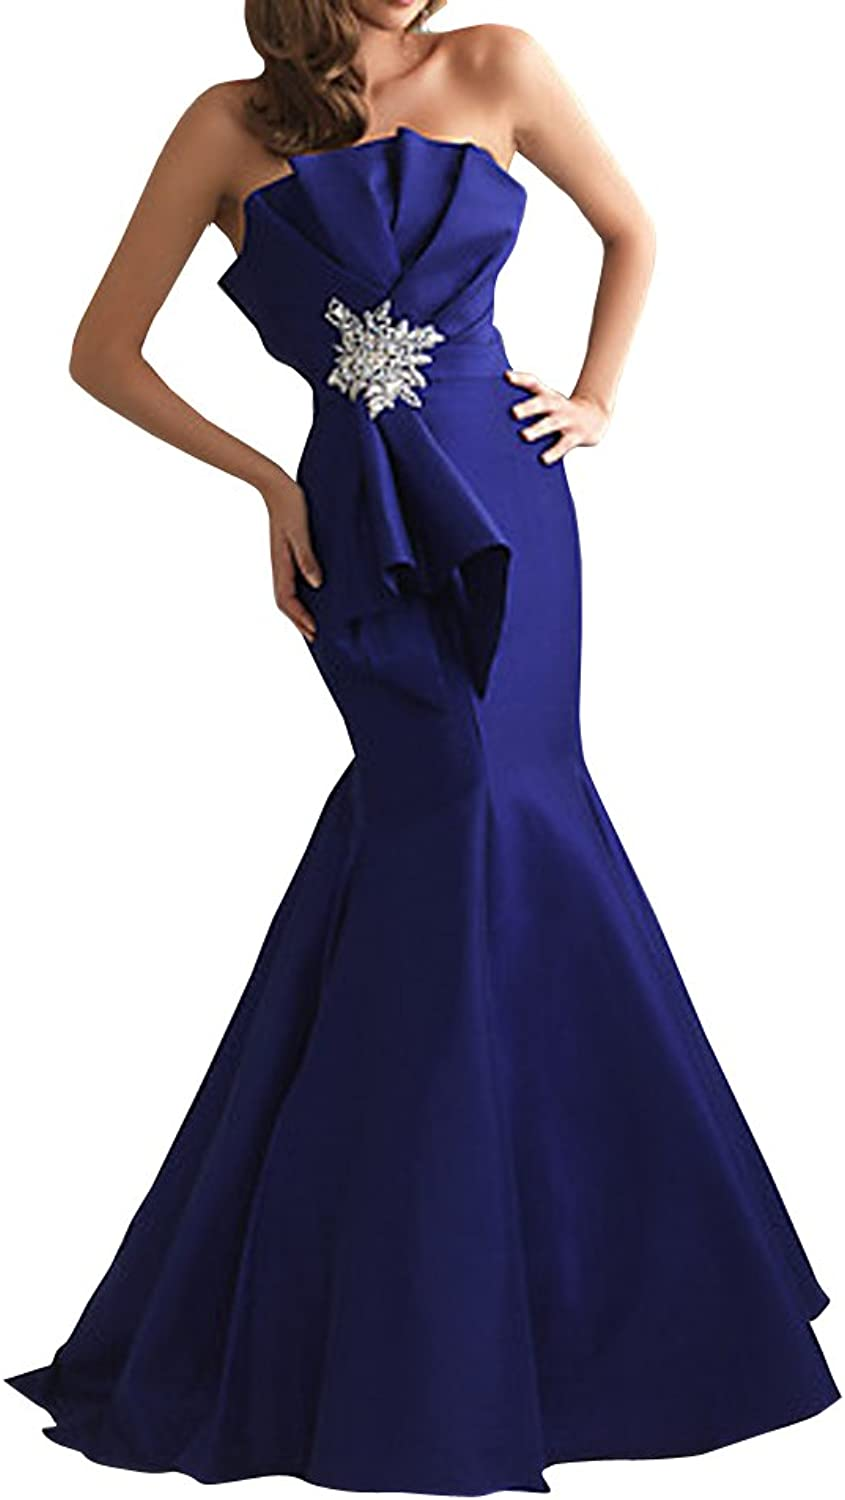 CCHAPPINESS Women's Floor Length Strapless Evening Party Bridesmaid Dresses